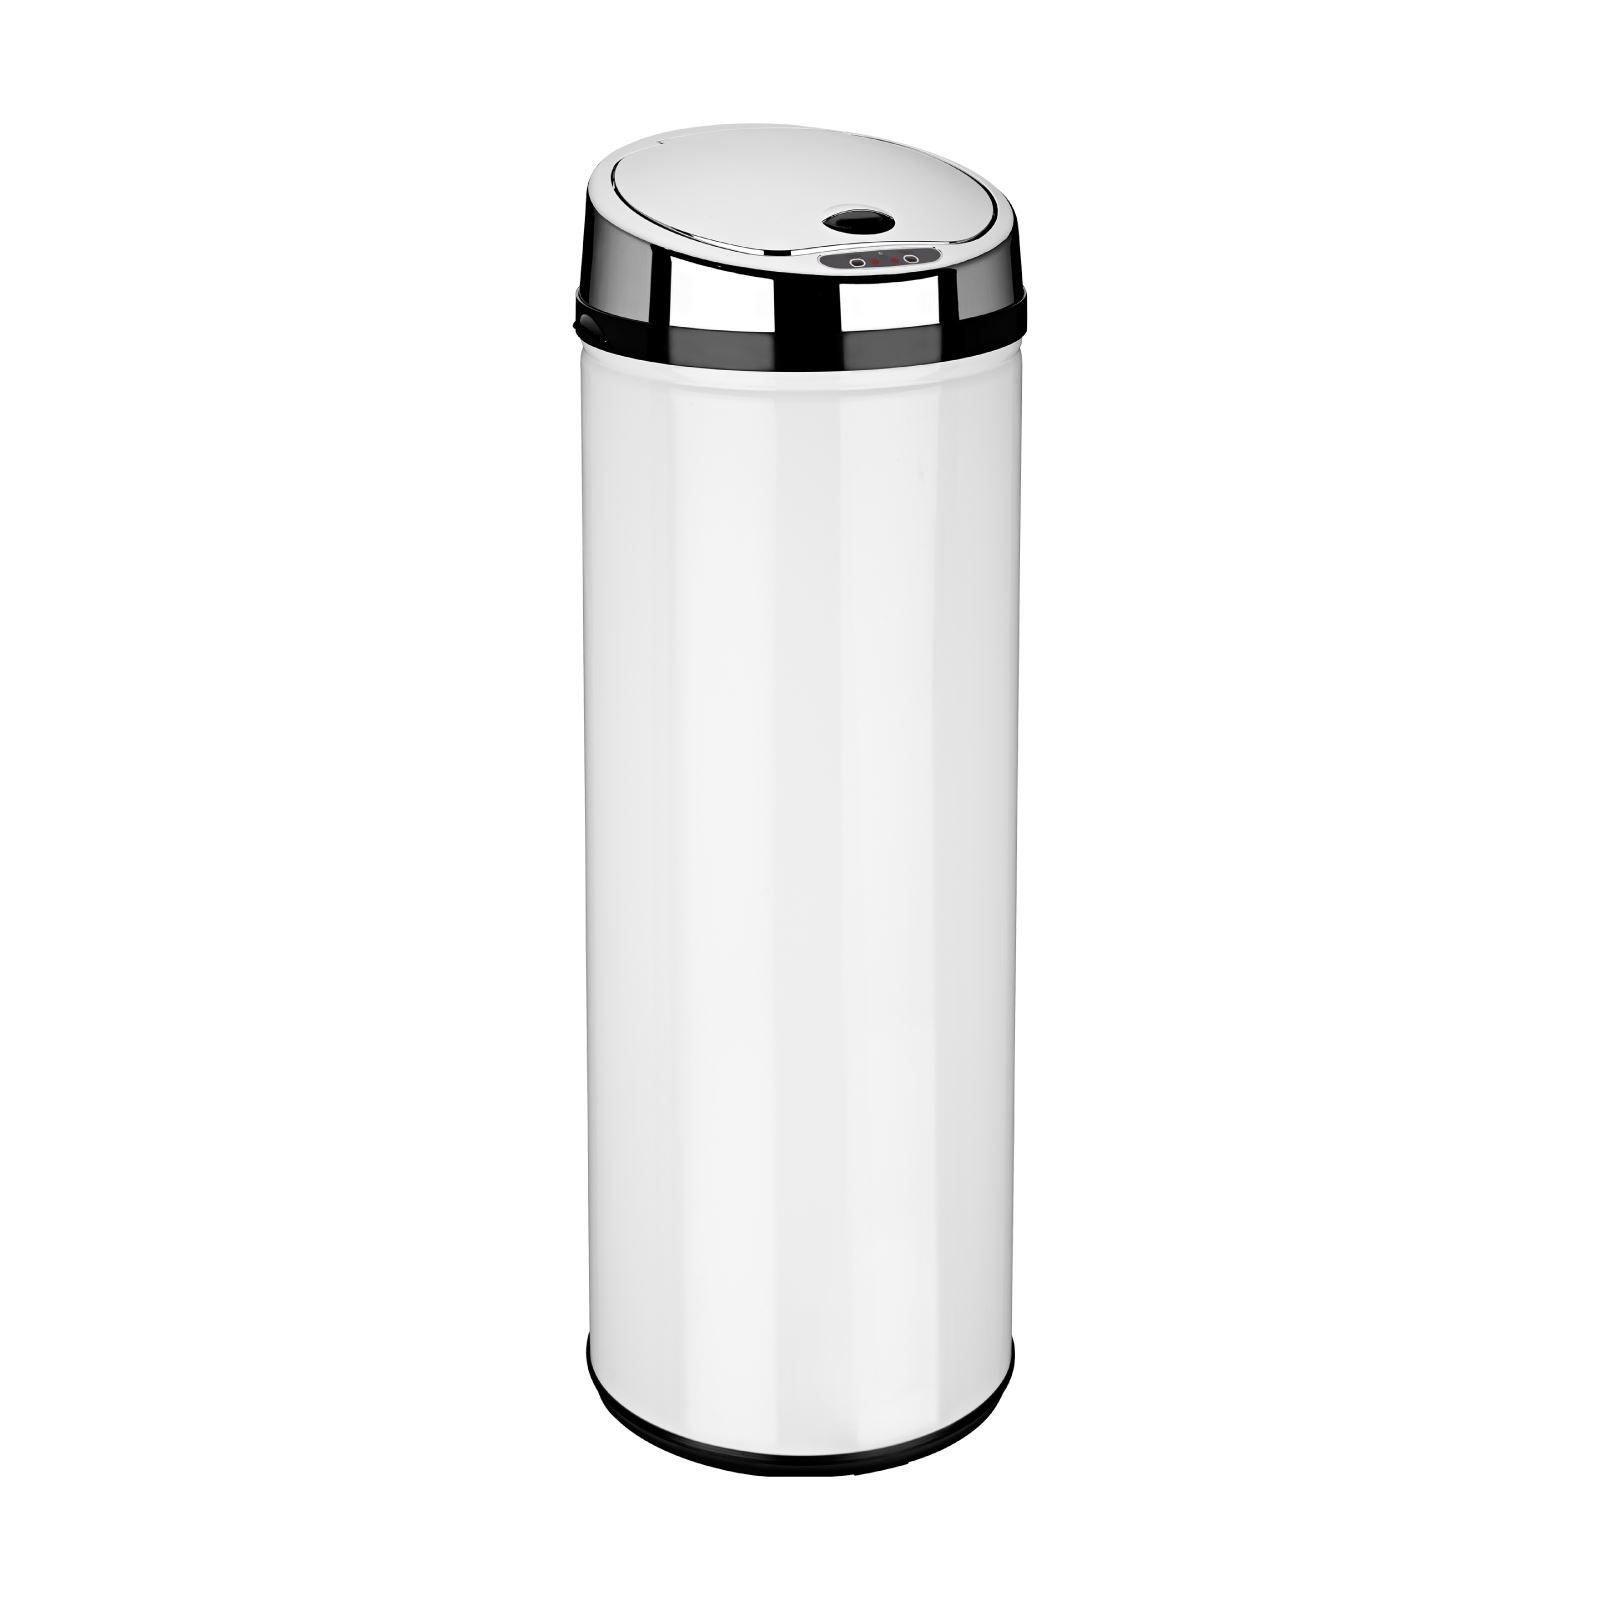 White 50l Kitchen Bin